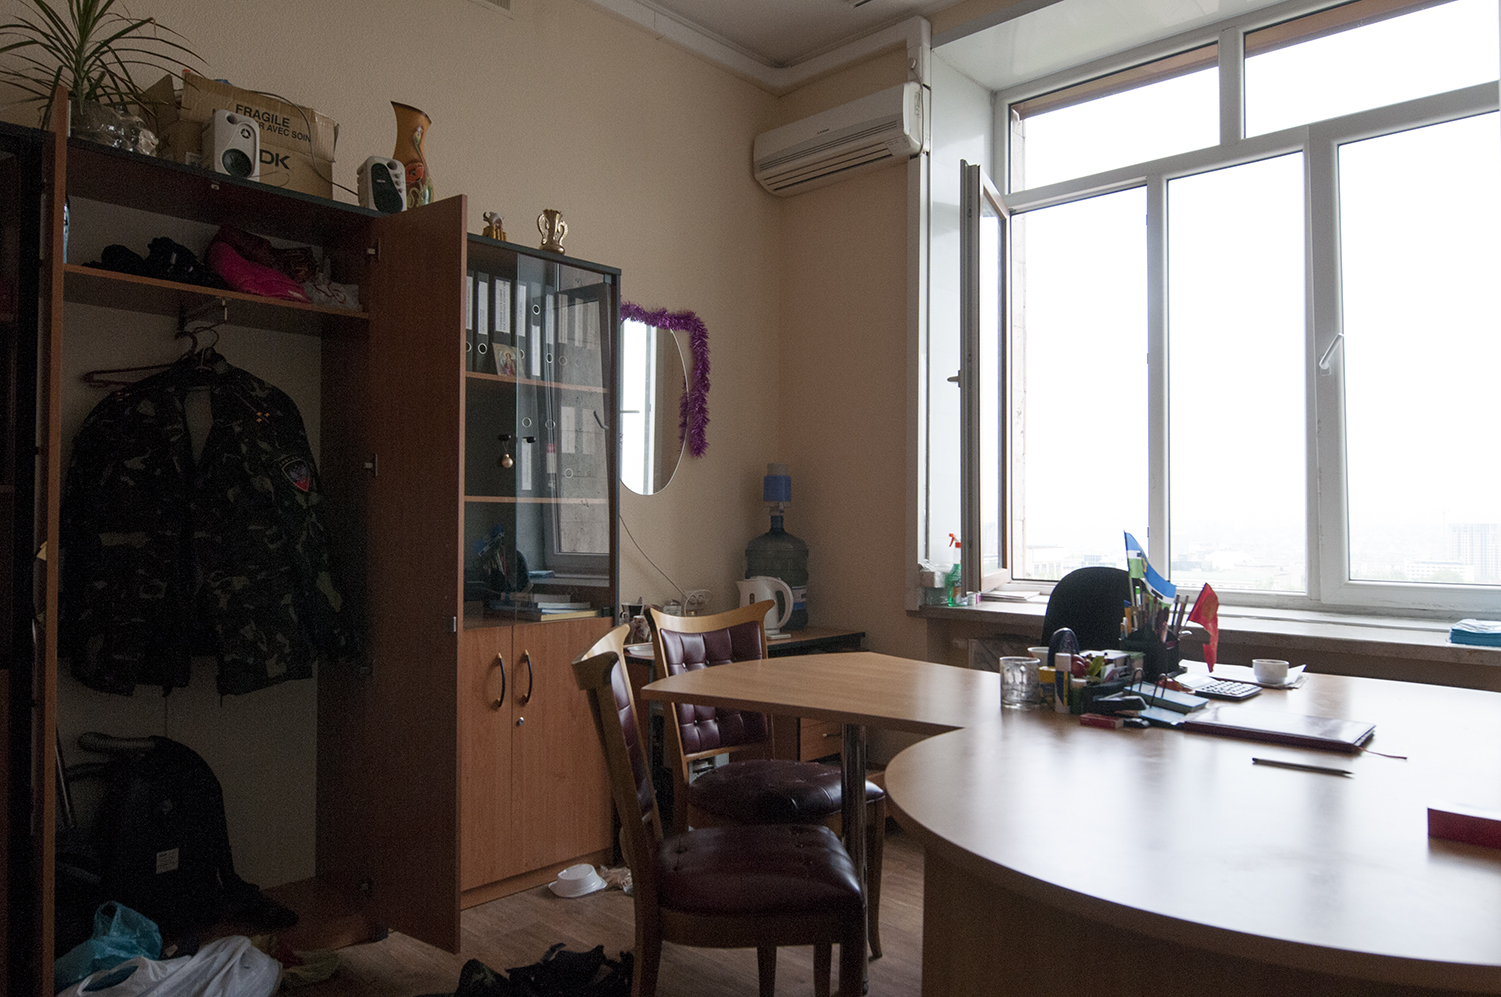 Uniform of a officer of the Donetsk People's Republic hanging in a closet, ODA